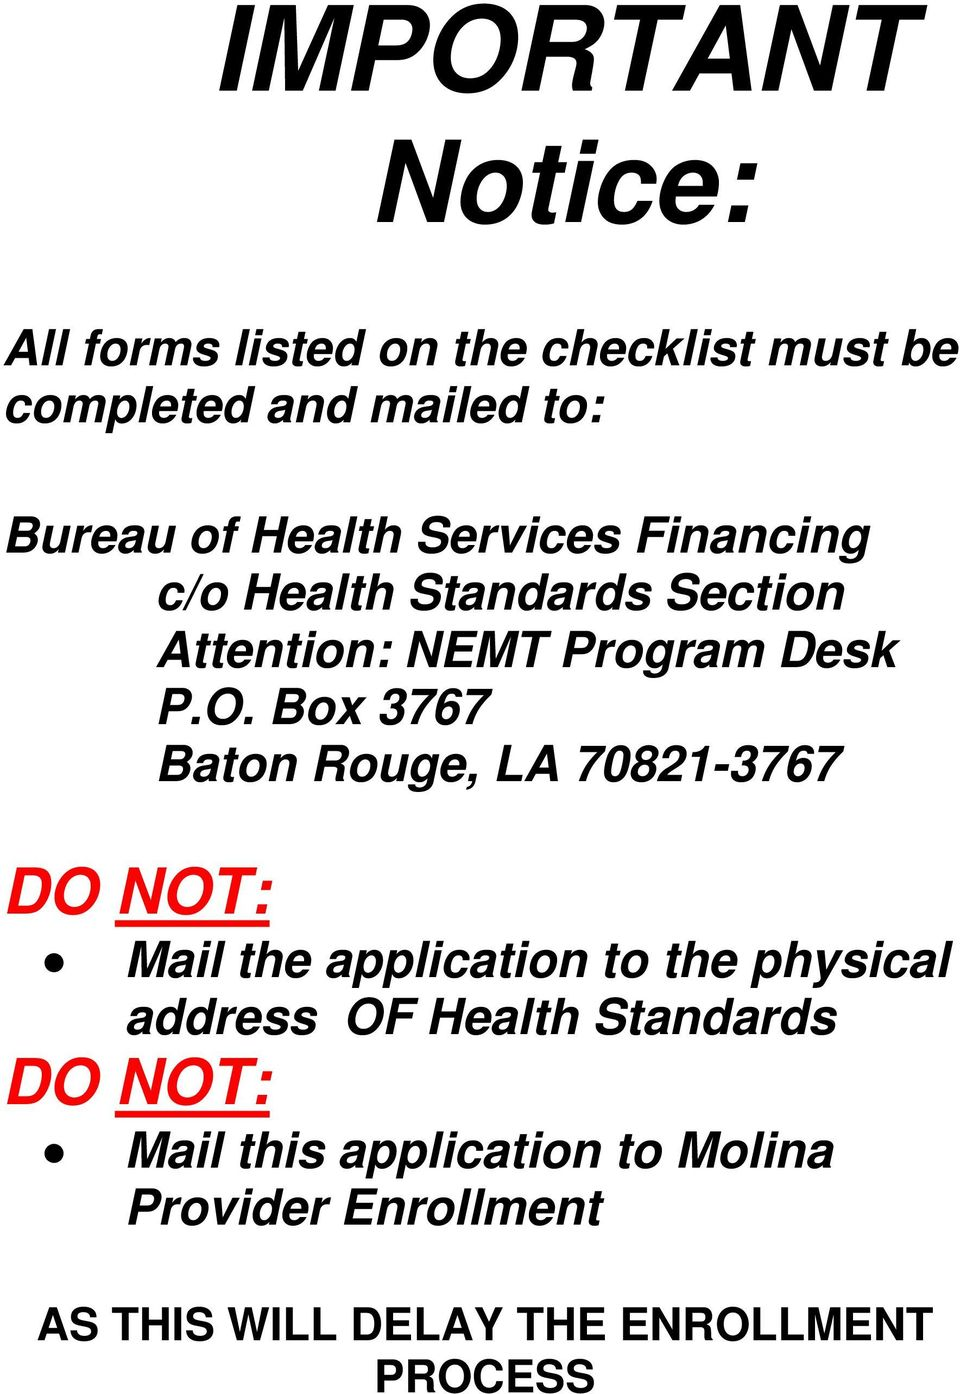 Box 3767 Baton Rouge, LA 70821-3767 DO NOT: Mail the application to the physical address OF Health